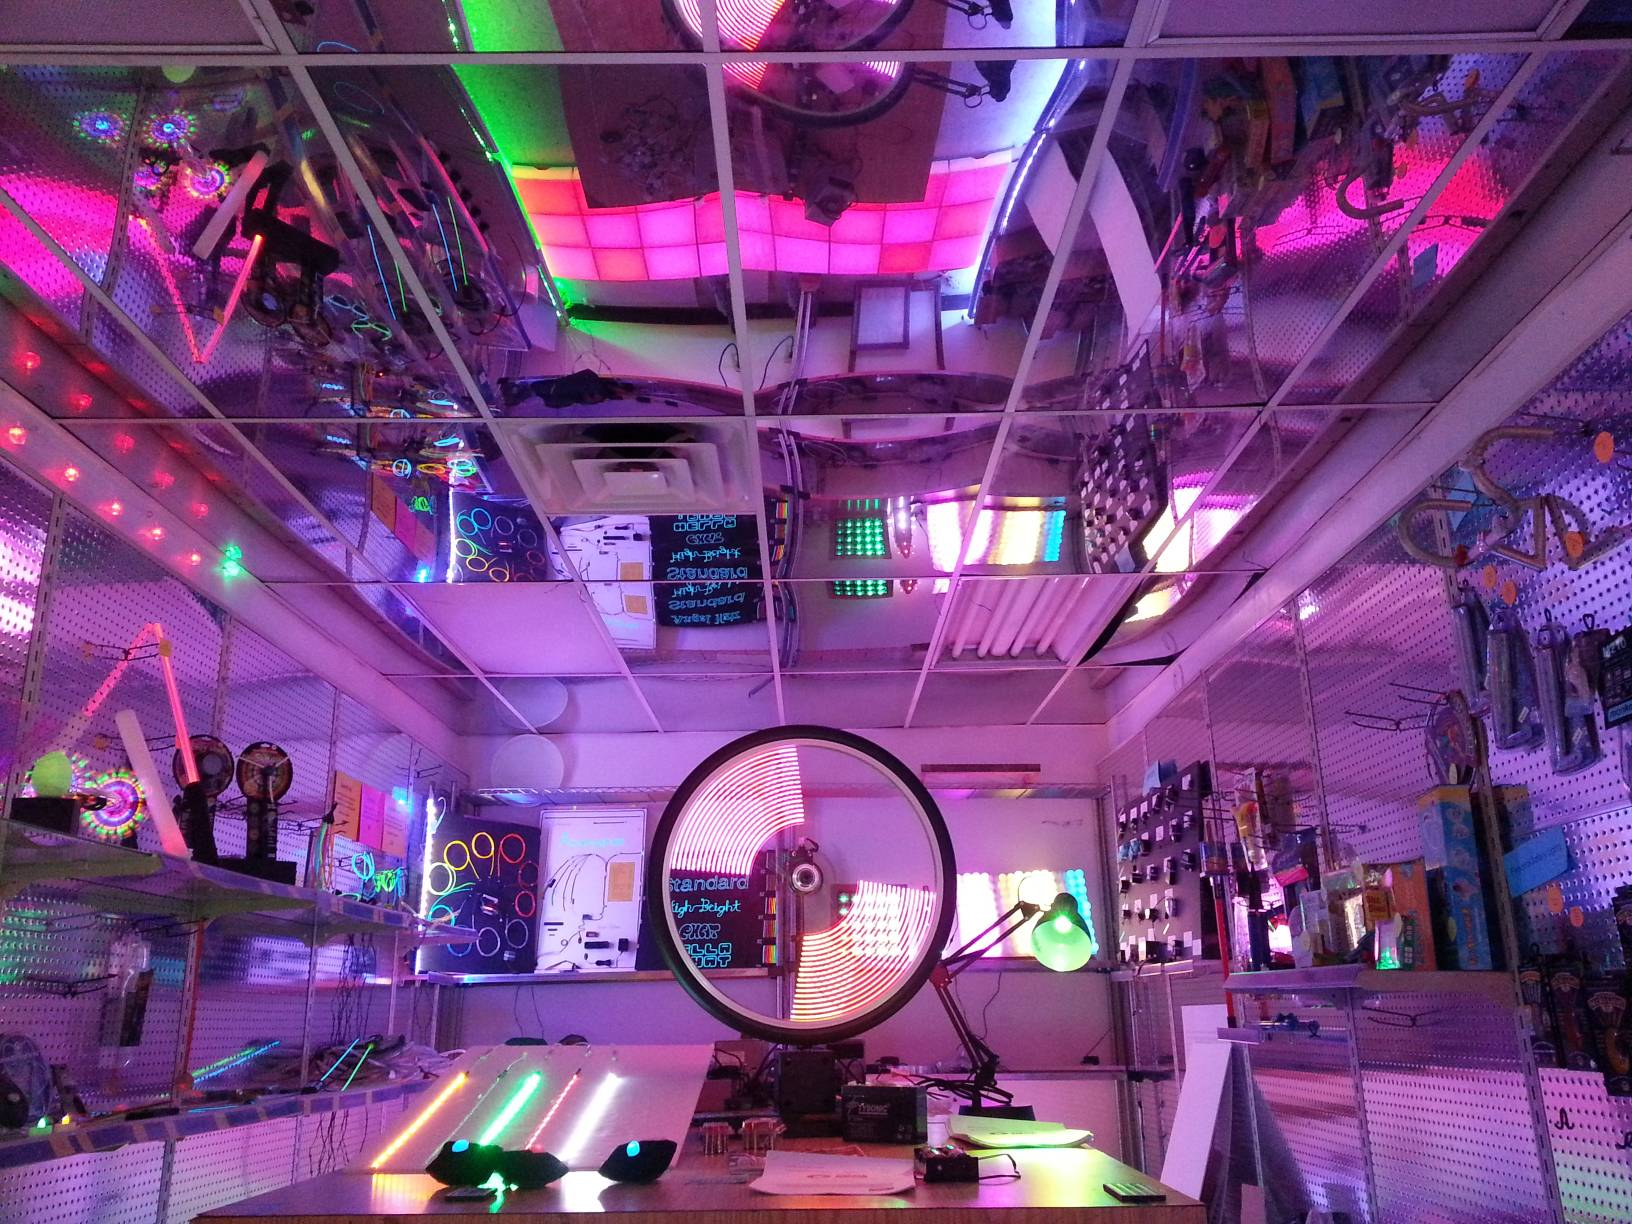 Cool Neon showroom